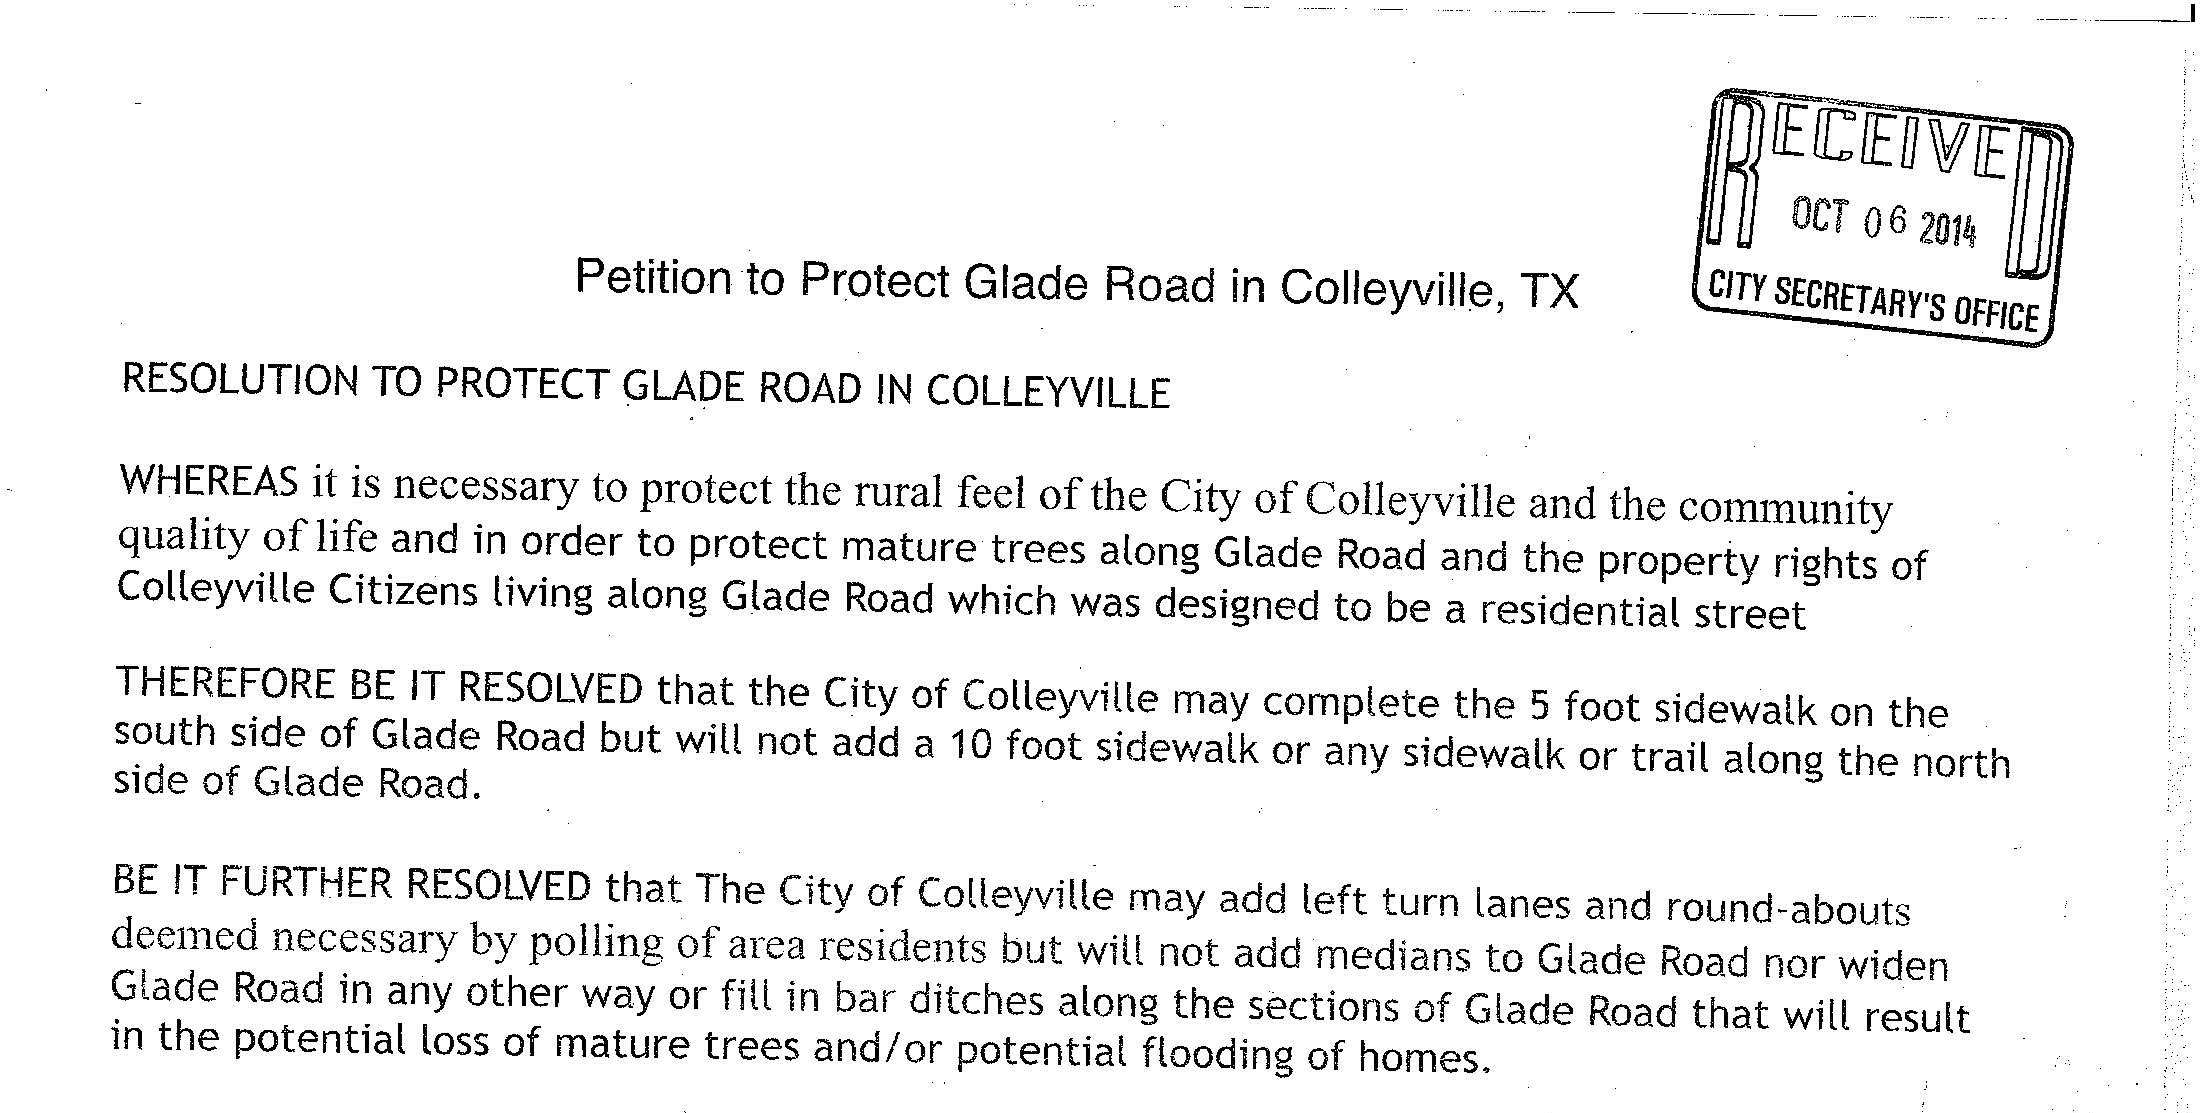 Glade_Road_petition_as_submitted_10_6_14